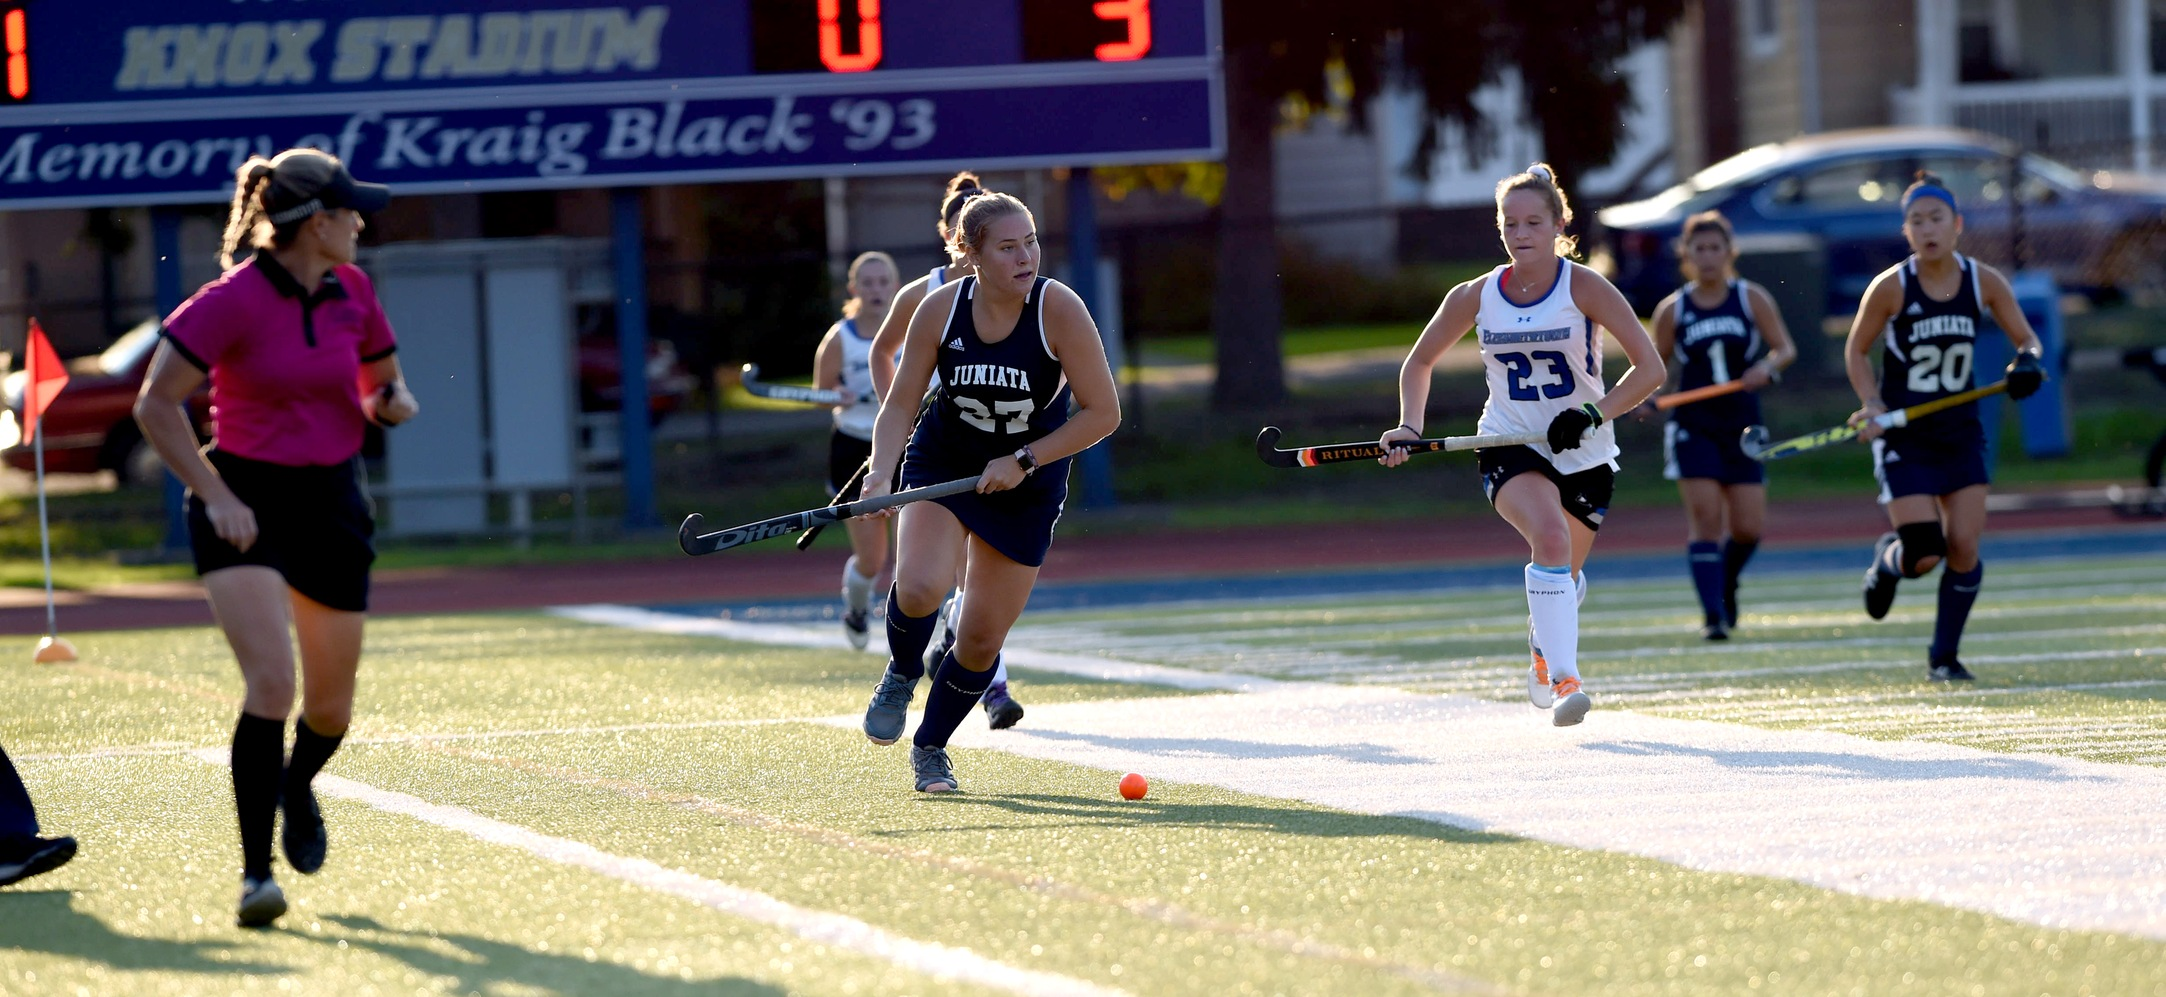 Freshman, Catherine Zvorsky tallied her first career goal in Juniata's 4-0 win over Drew.